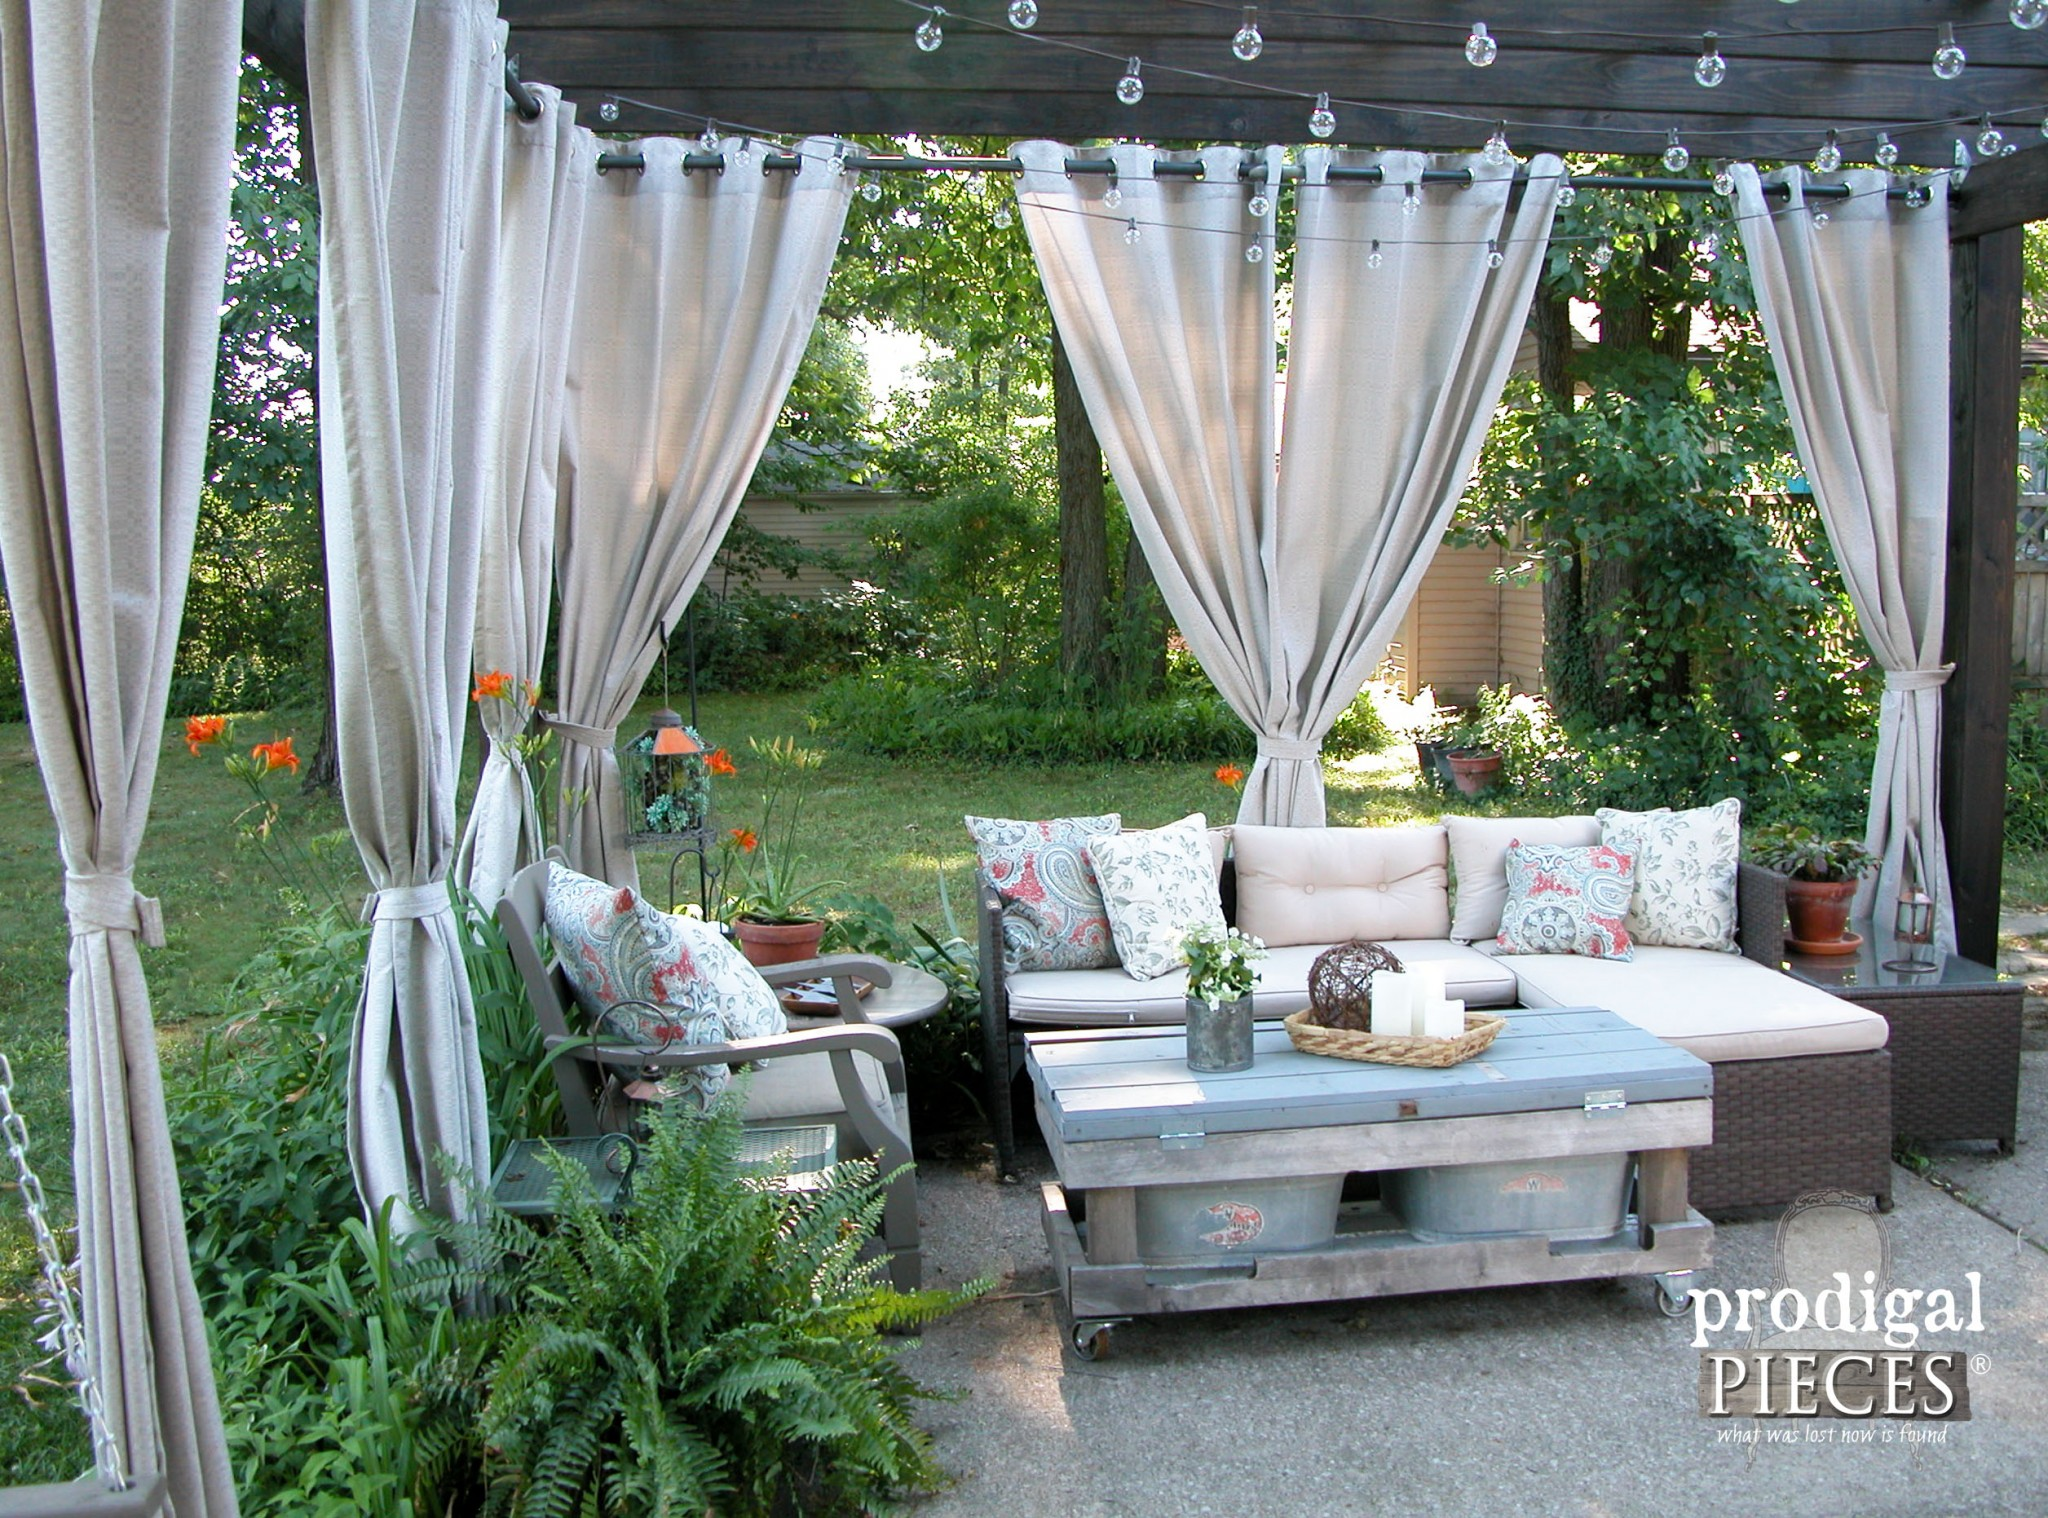 Seating Area with Outdoor Curtains on Pergola by Prodigal Pieces | www.prodigalpieces.com